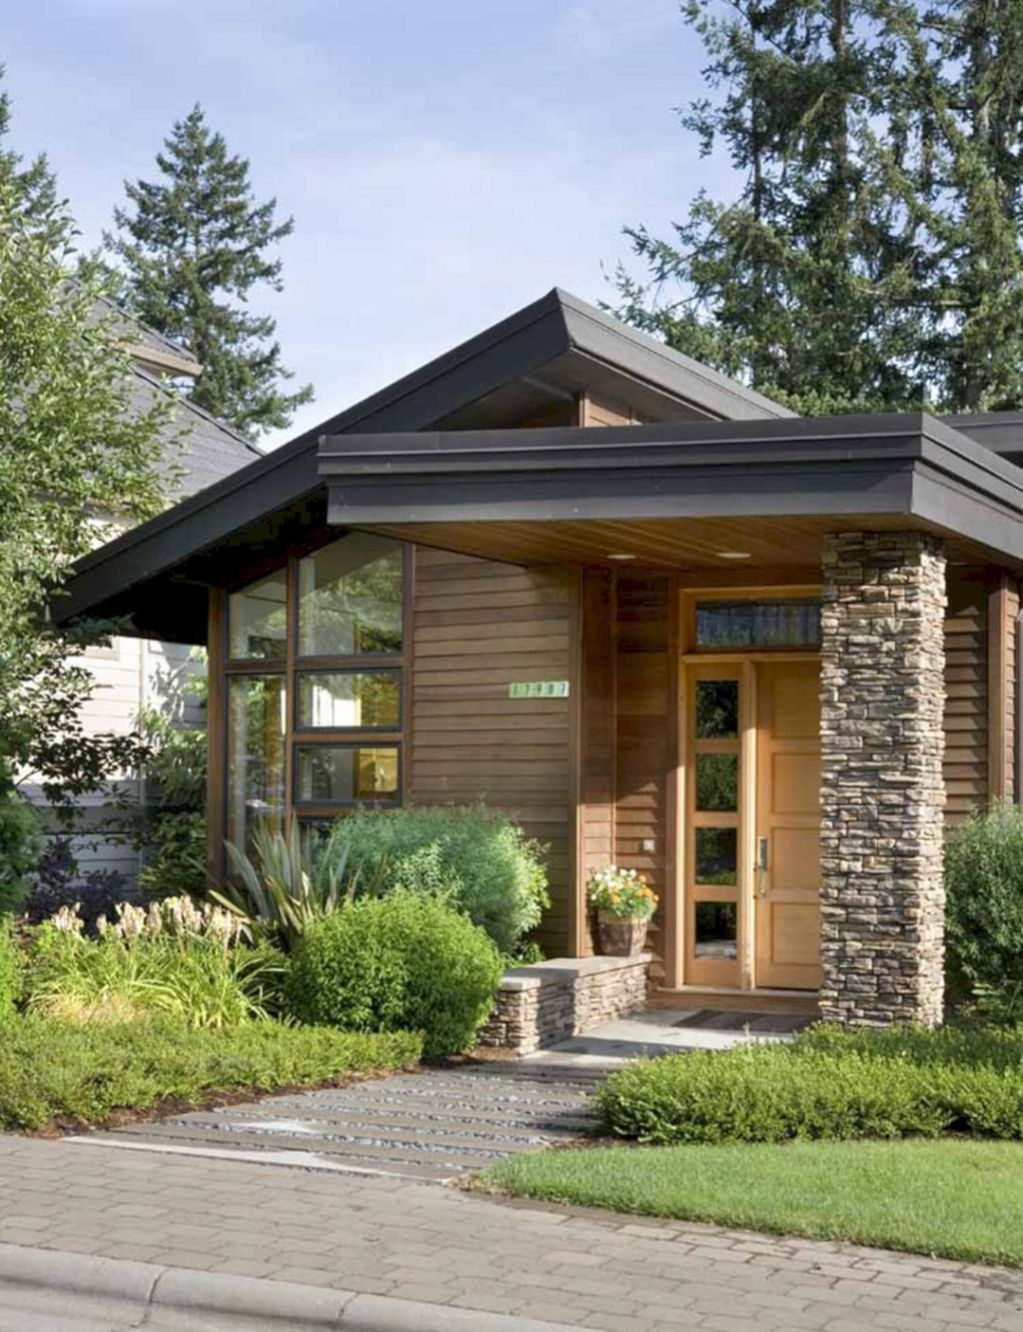 Top 95+ Modern Tiny House Design and Small Homes Collections | Pinterest